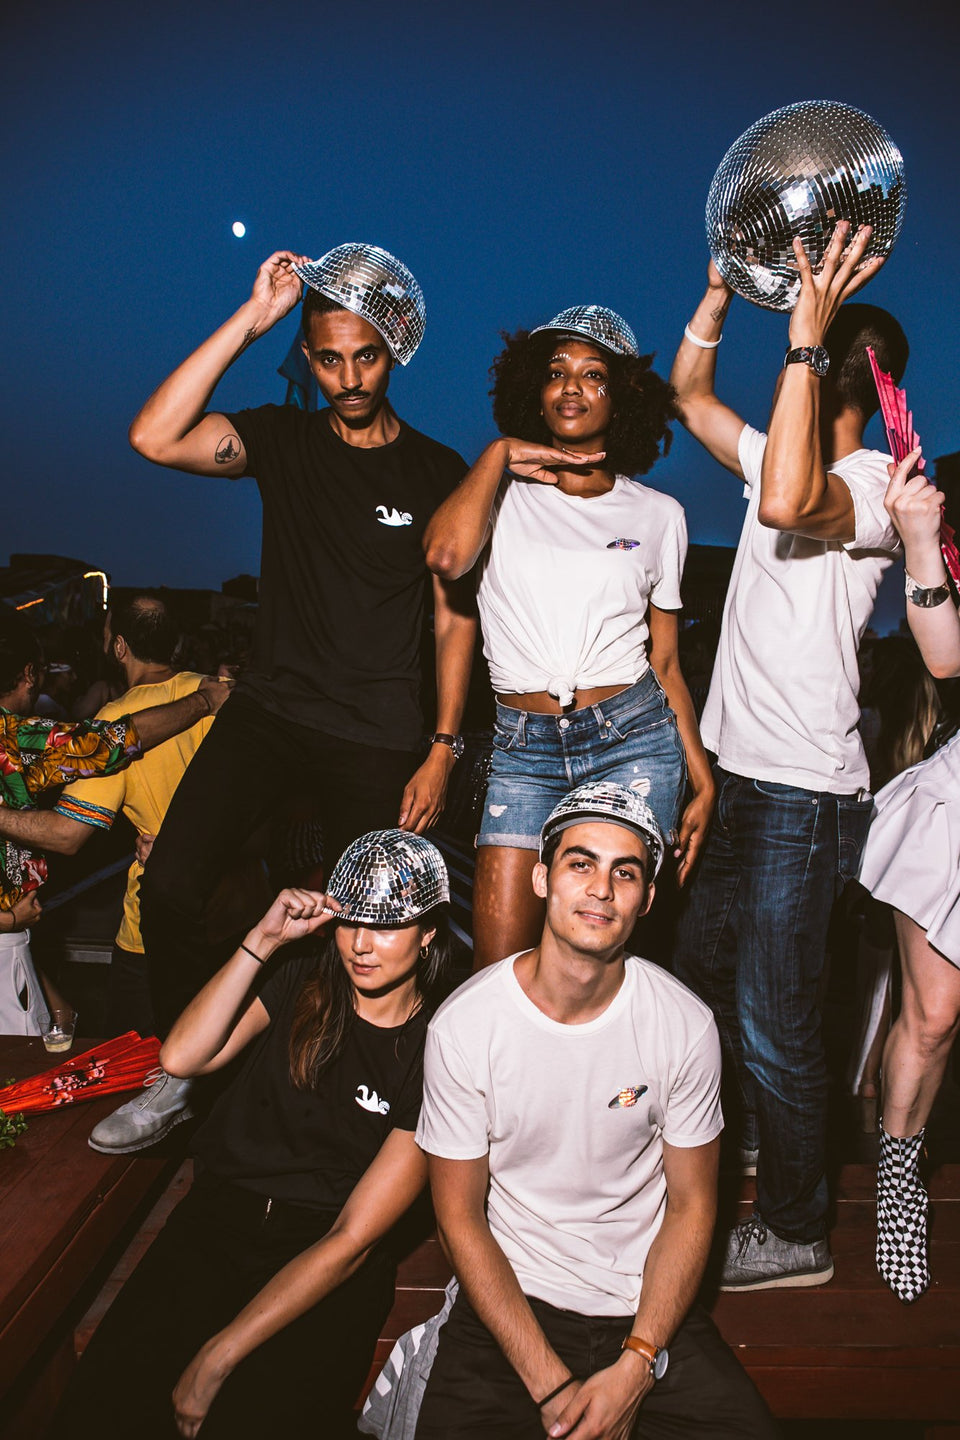 Male and female models all wearing the Thousand Deep disco hat, dancing to music with a disco ball. Photo taken on rooftop at Lightning Society in Brooklyn, New York